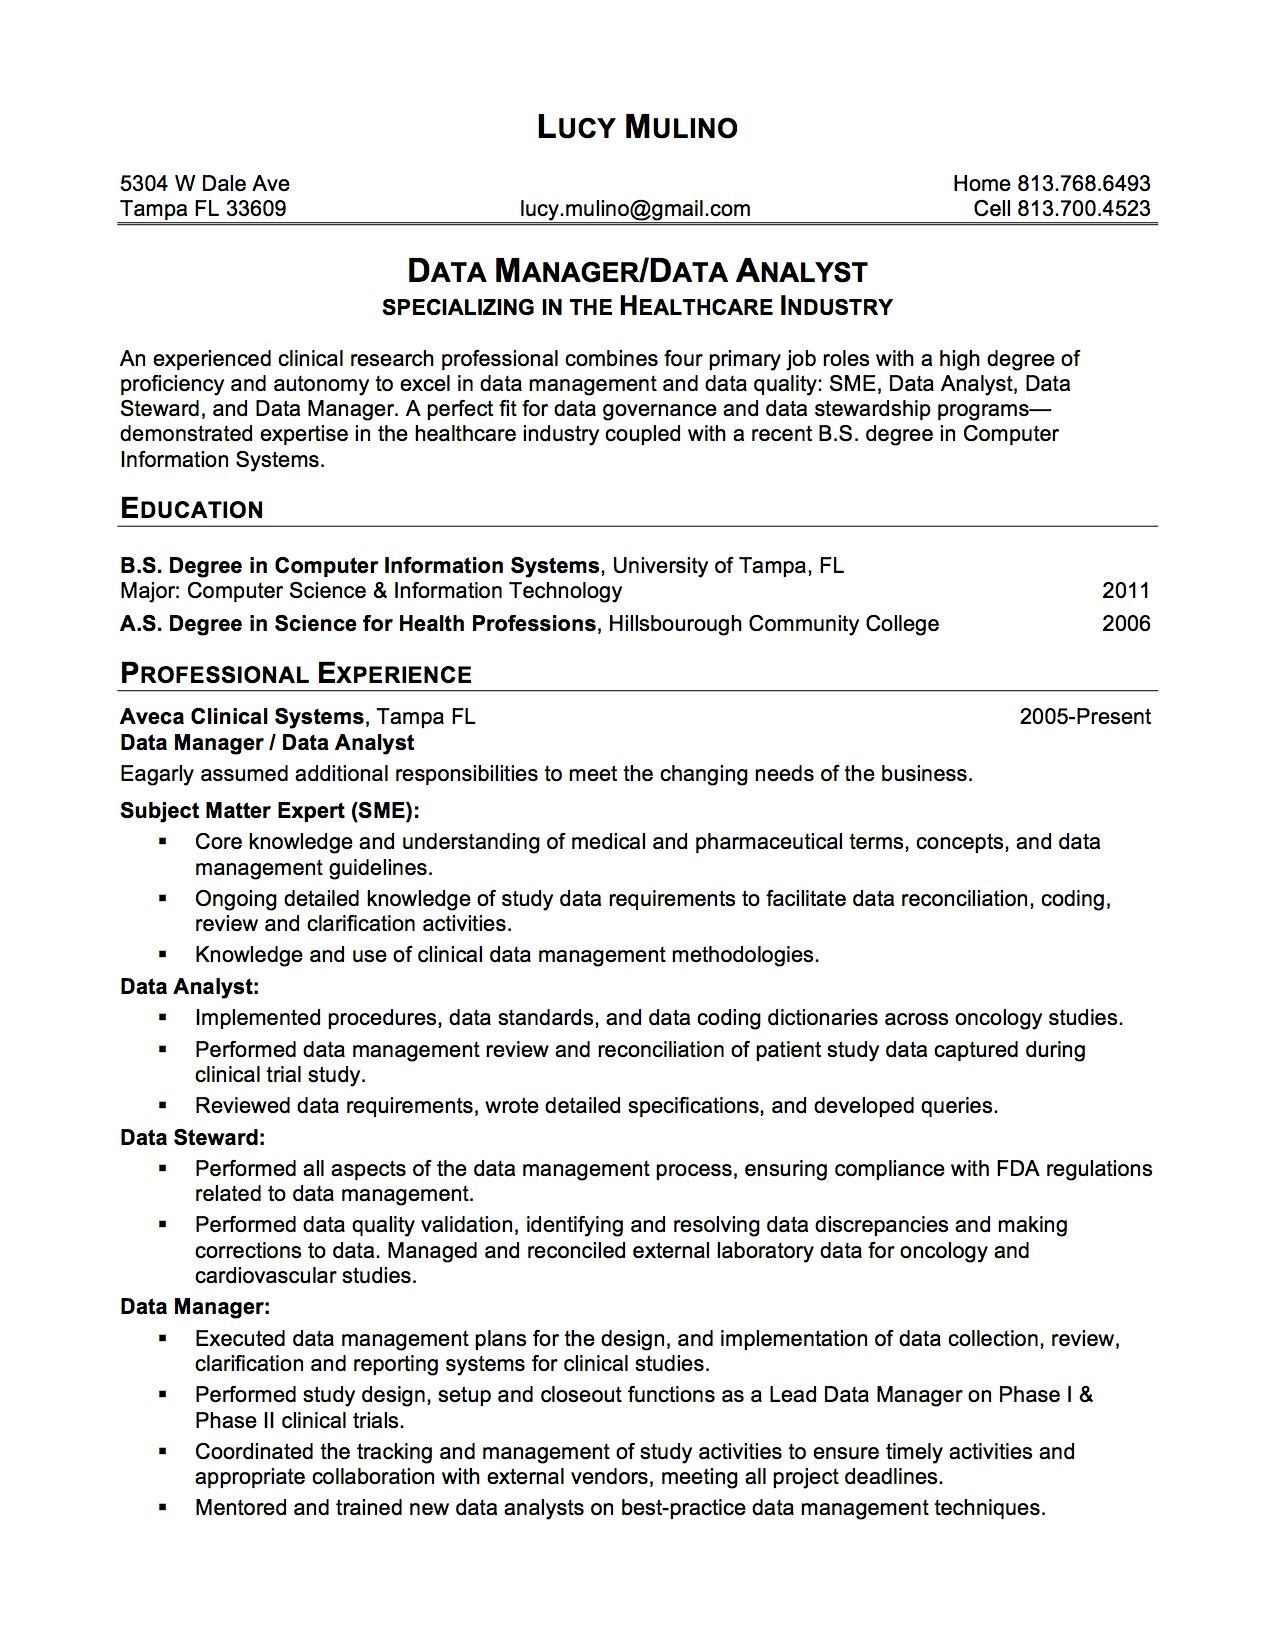 this is a good sample resume nice format balance of white space and print